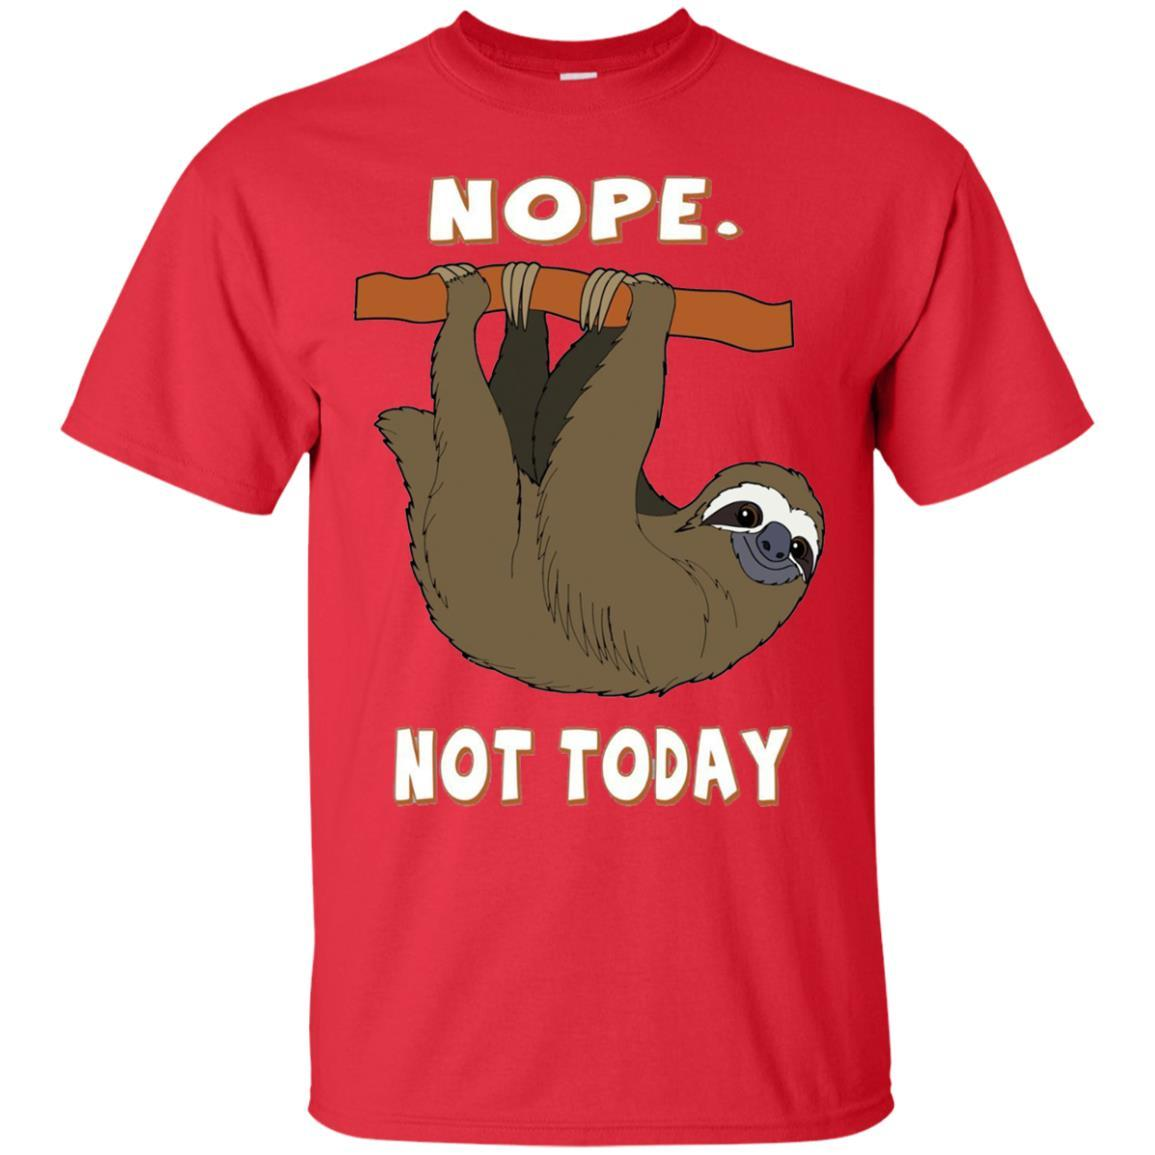 Nope. Not Today - Sloth Shirt